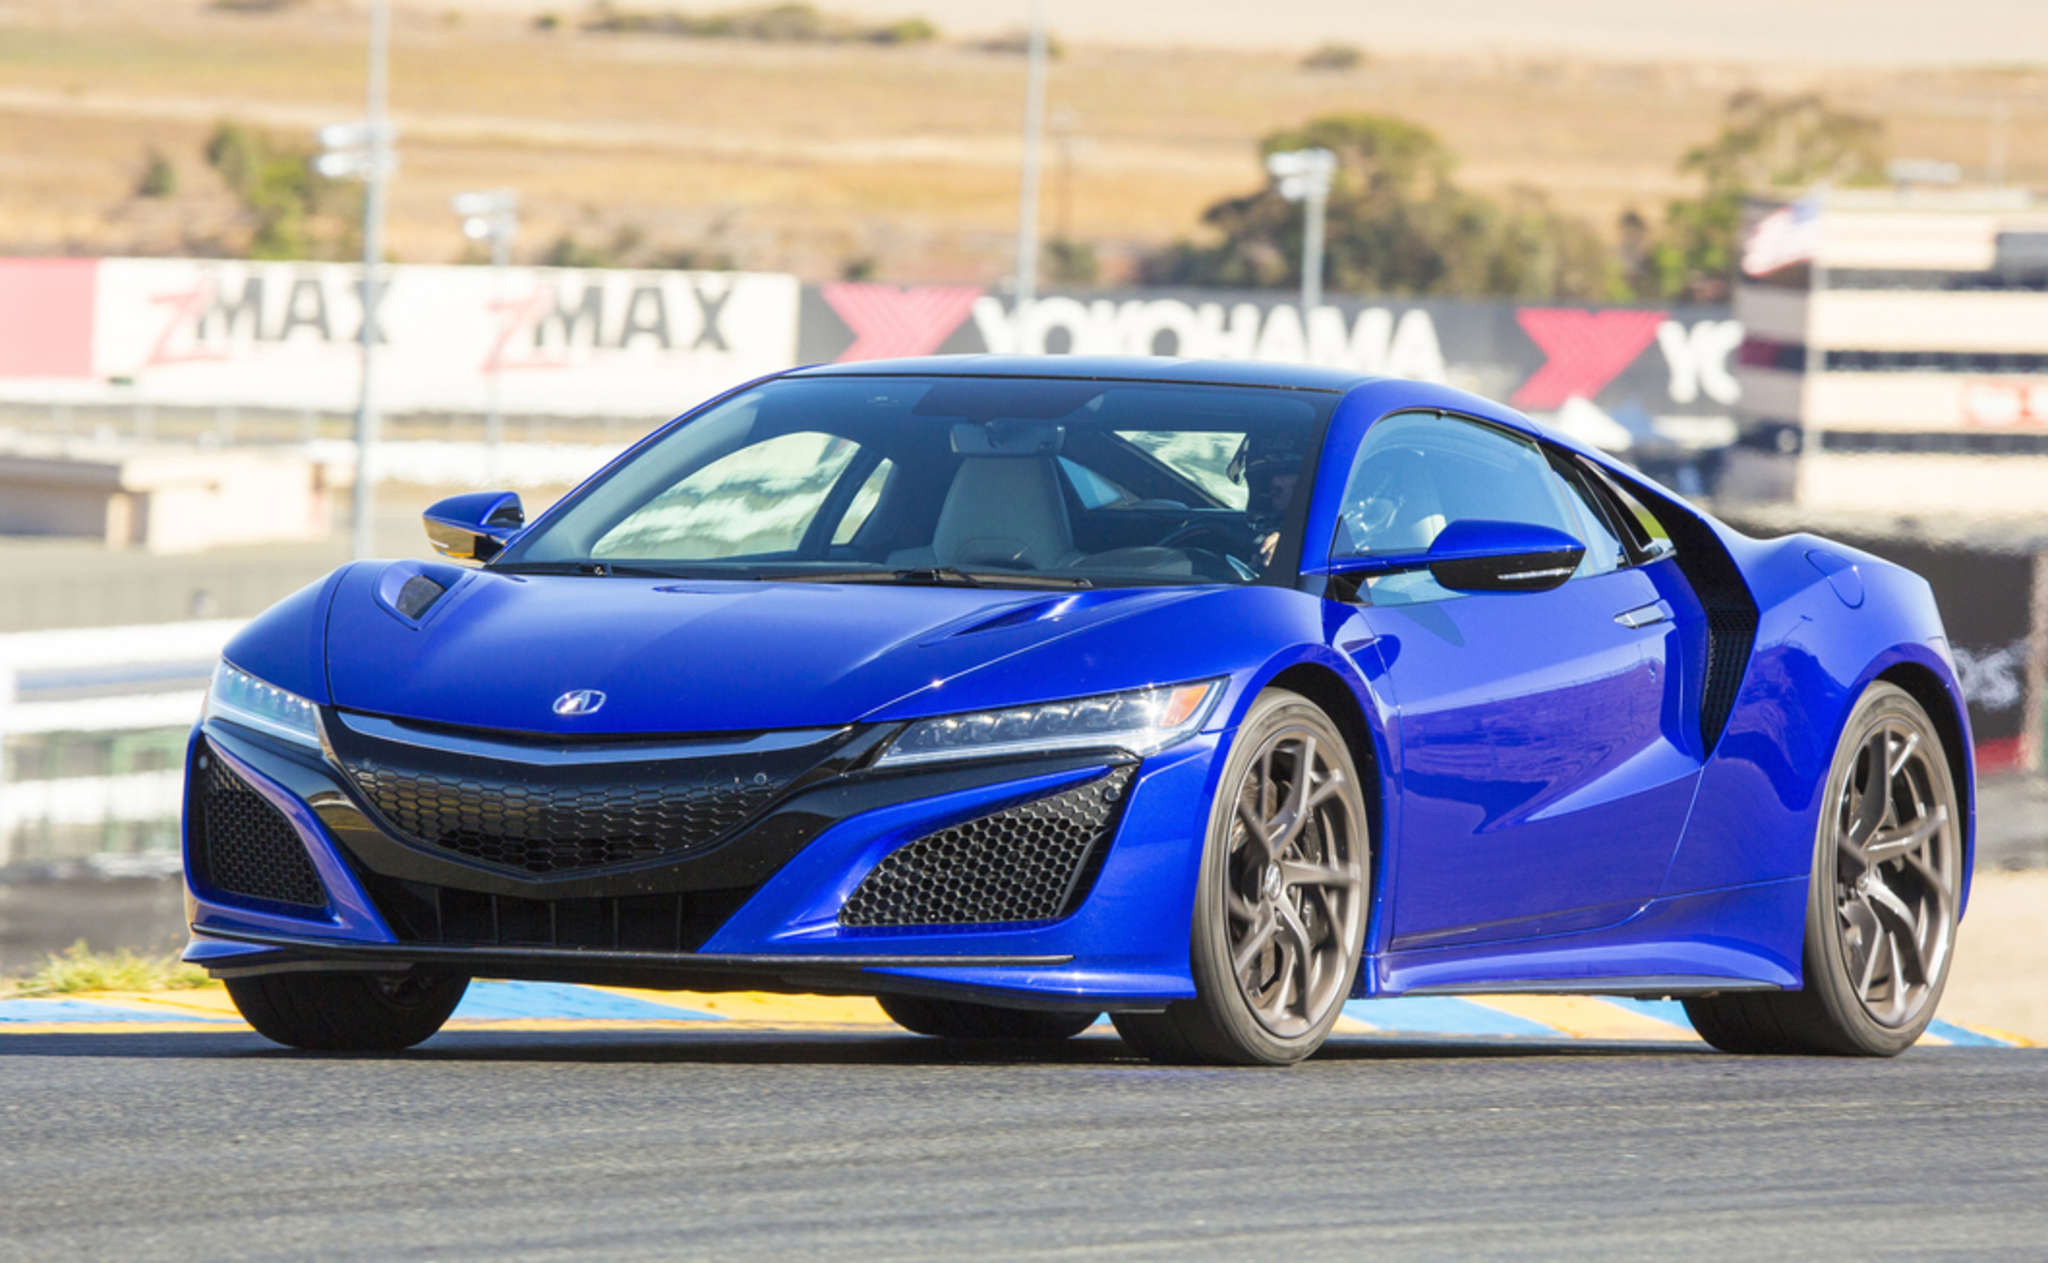 The 2017 NSX combines the looks of the modern Lotus and McLaren models with Acura´s own design ideas.